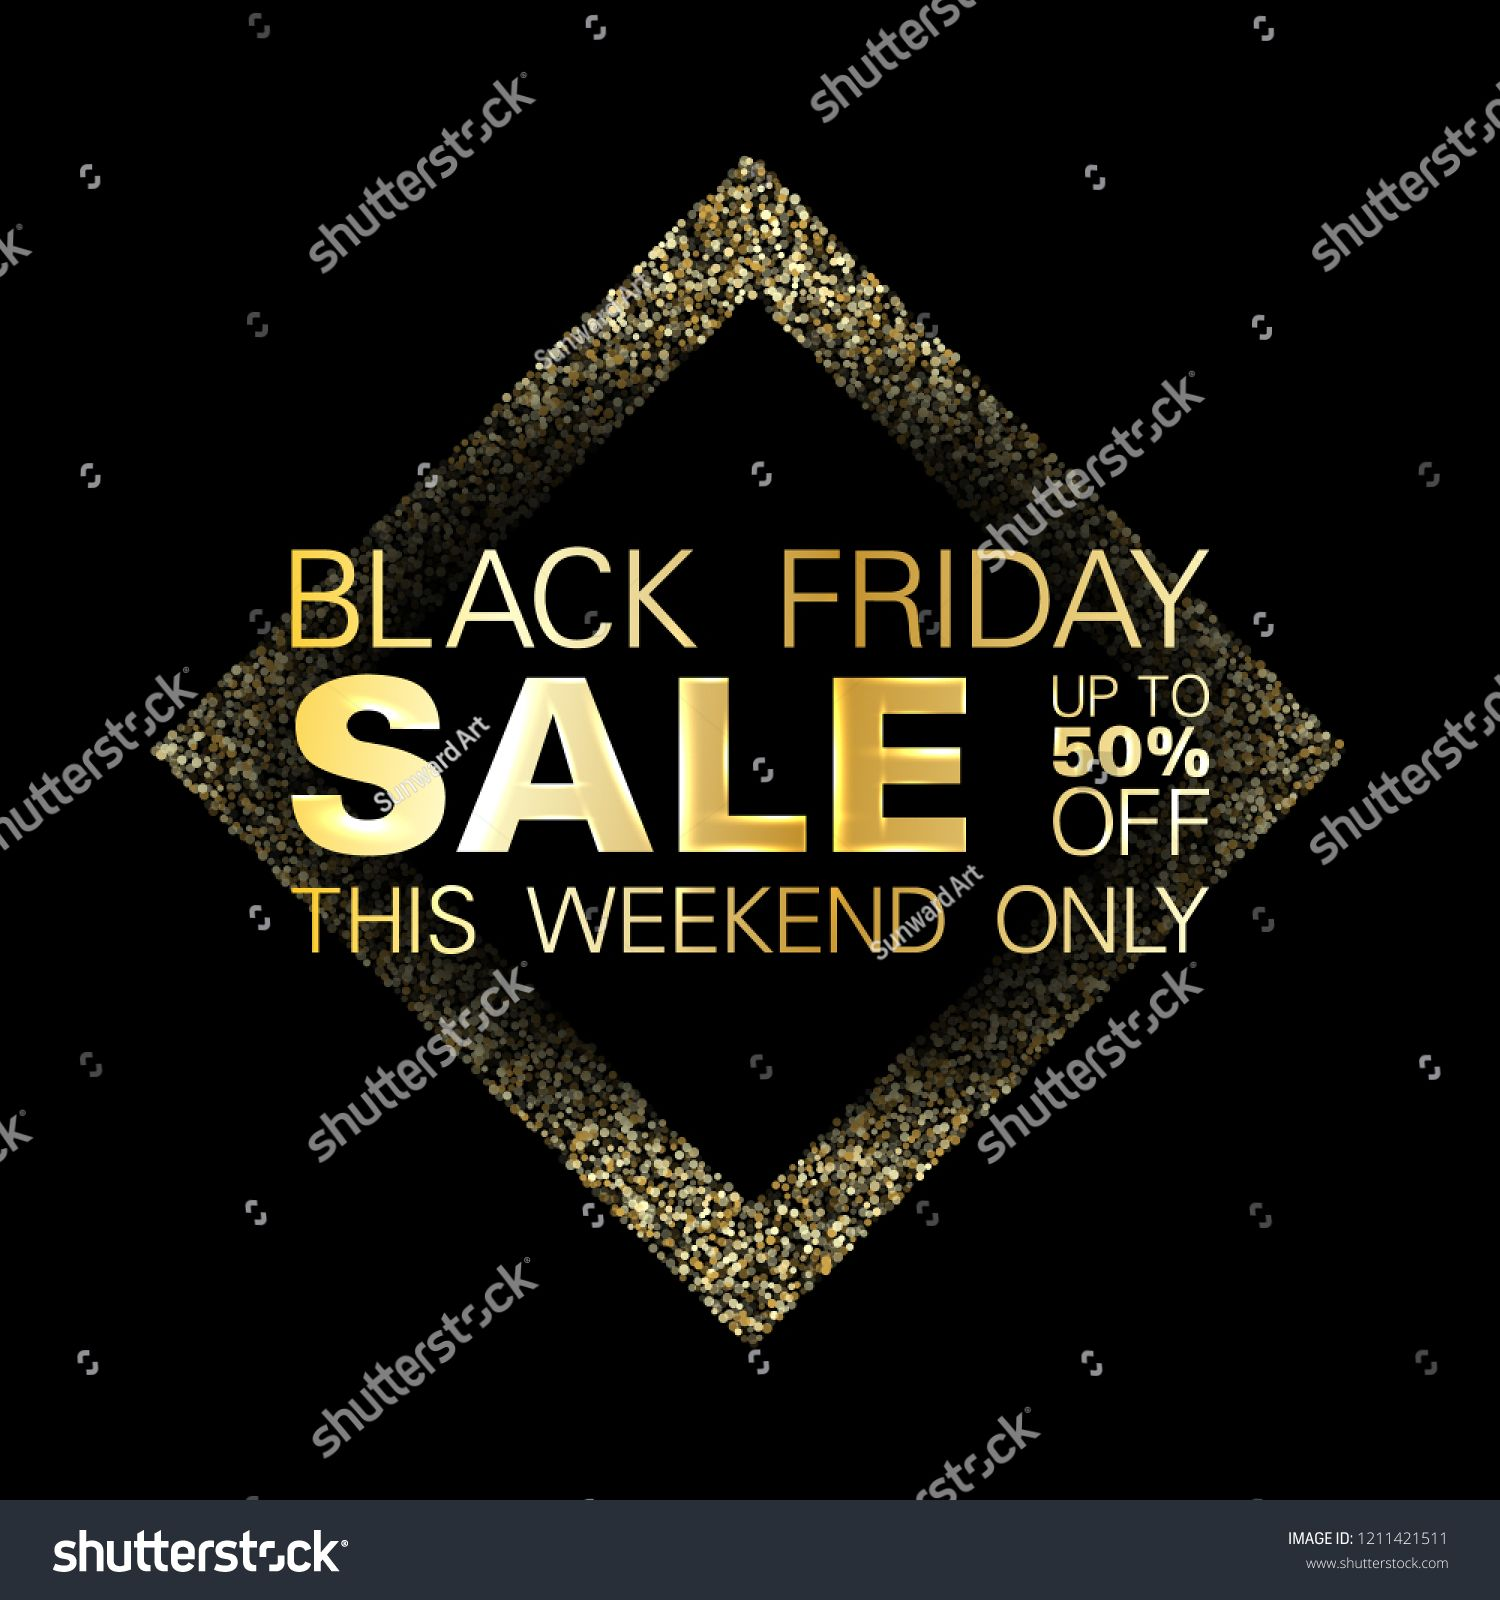 Black friday sale gold glitter background vector. Up to 50 percent off discount, this weekend only text. Black shine gold sparkles background. Friday sale banner design. background#glitter#vector#friday #goldglitterbackground